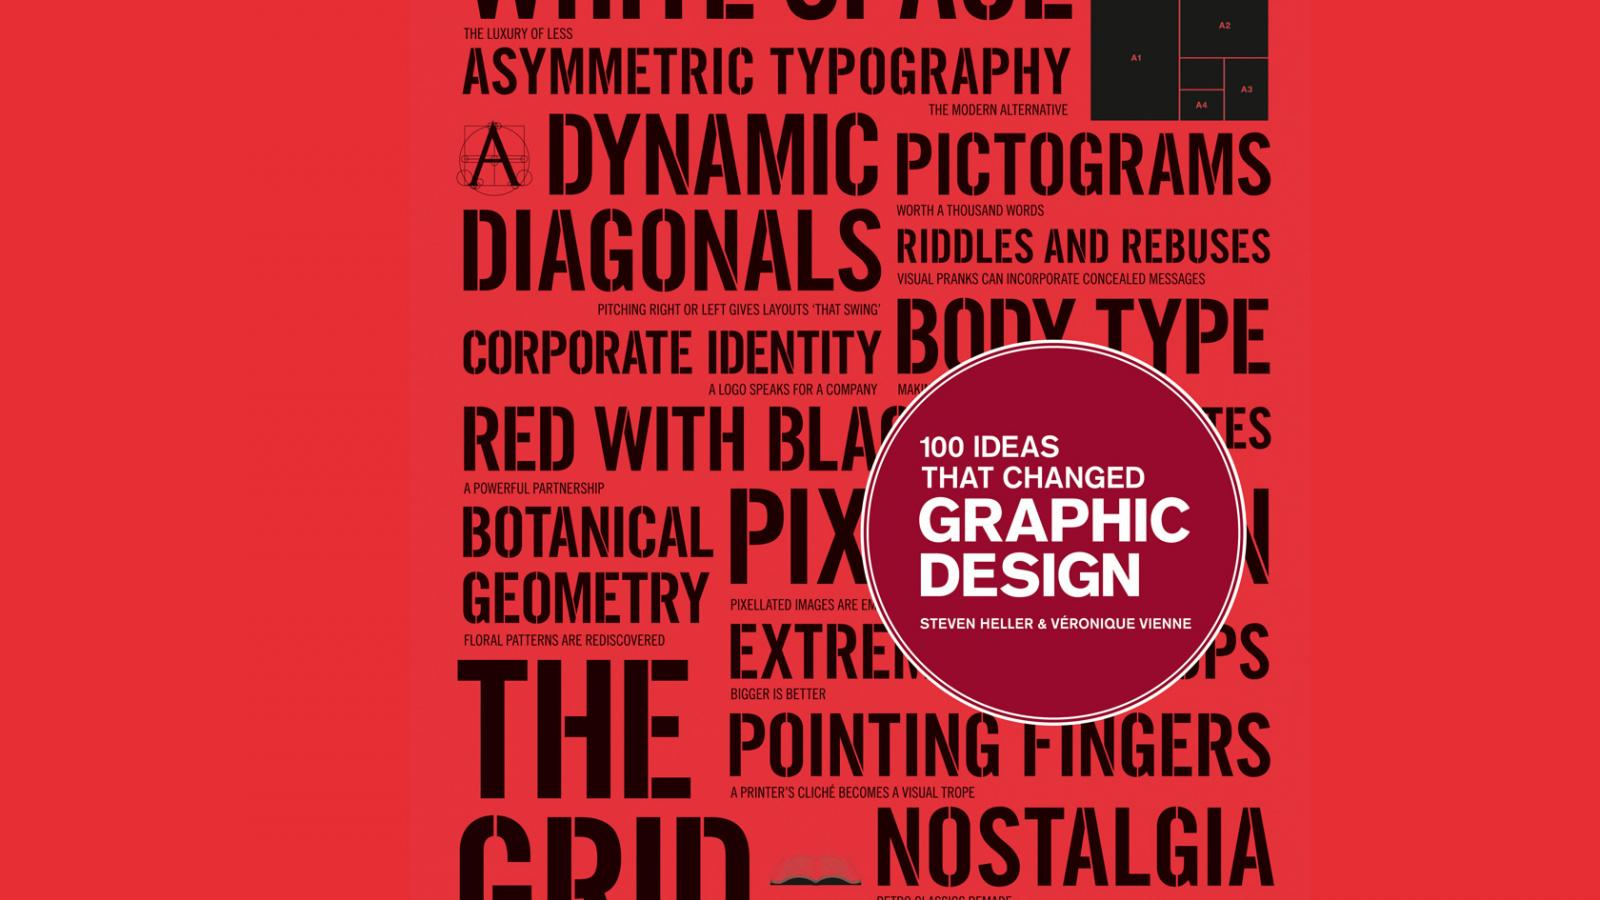 100 Ideas that Changed Graphic Design - Book Suggestion